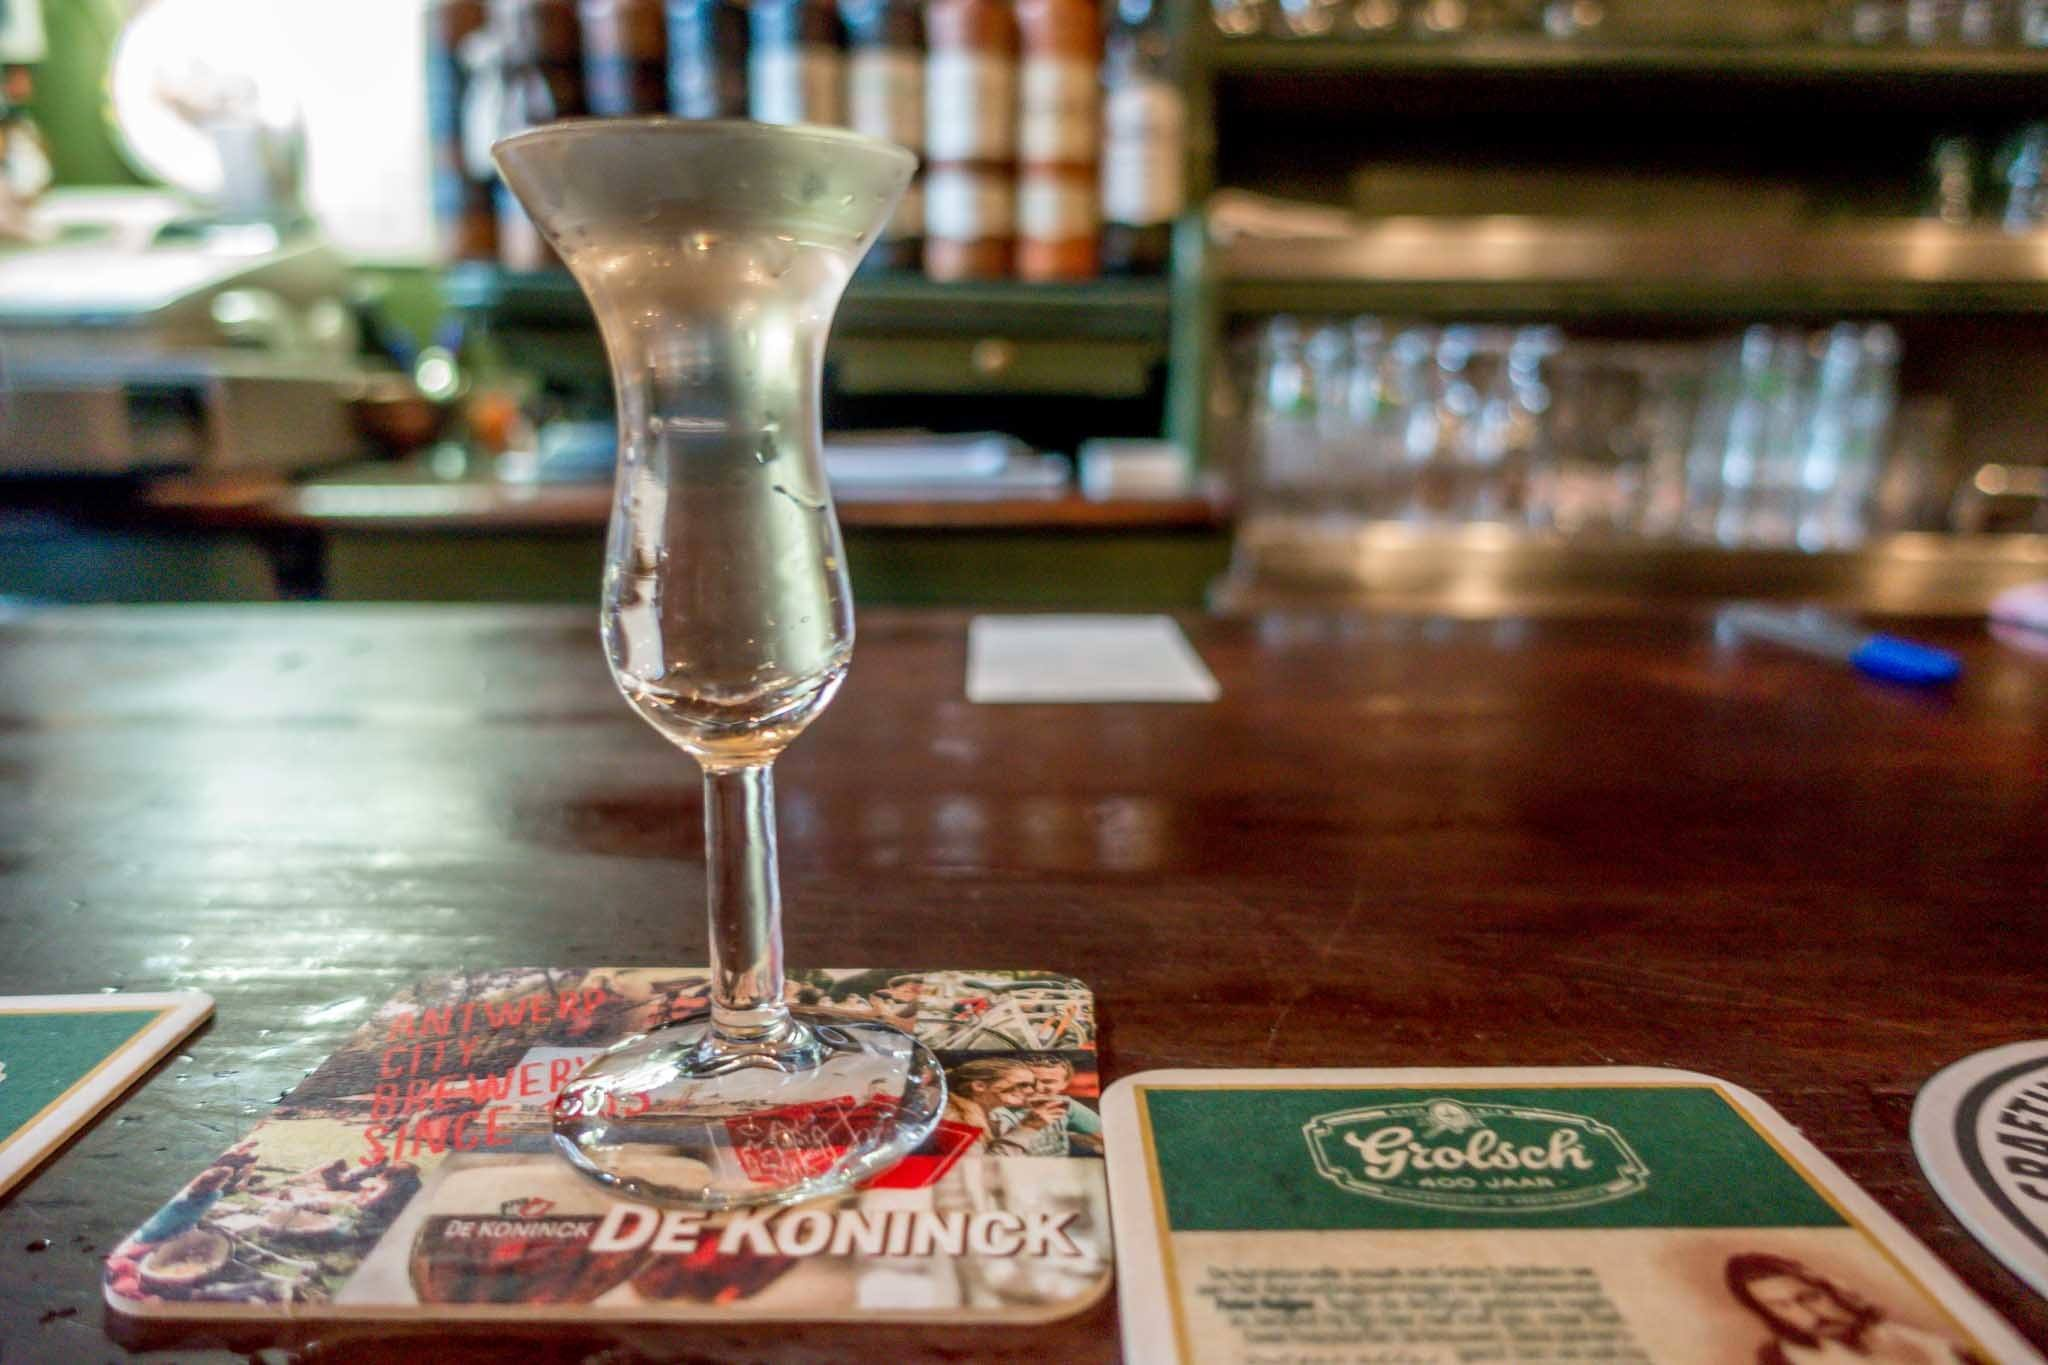 Developed over 350 years ago, genever is the traditional spirit of the Netherlands and one of the oldest Dutch drinks